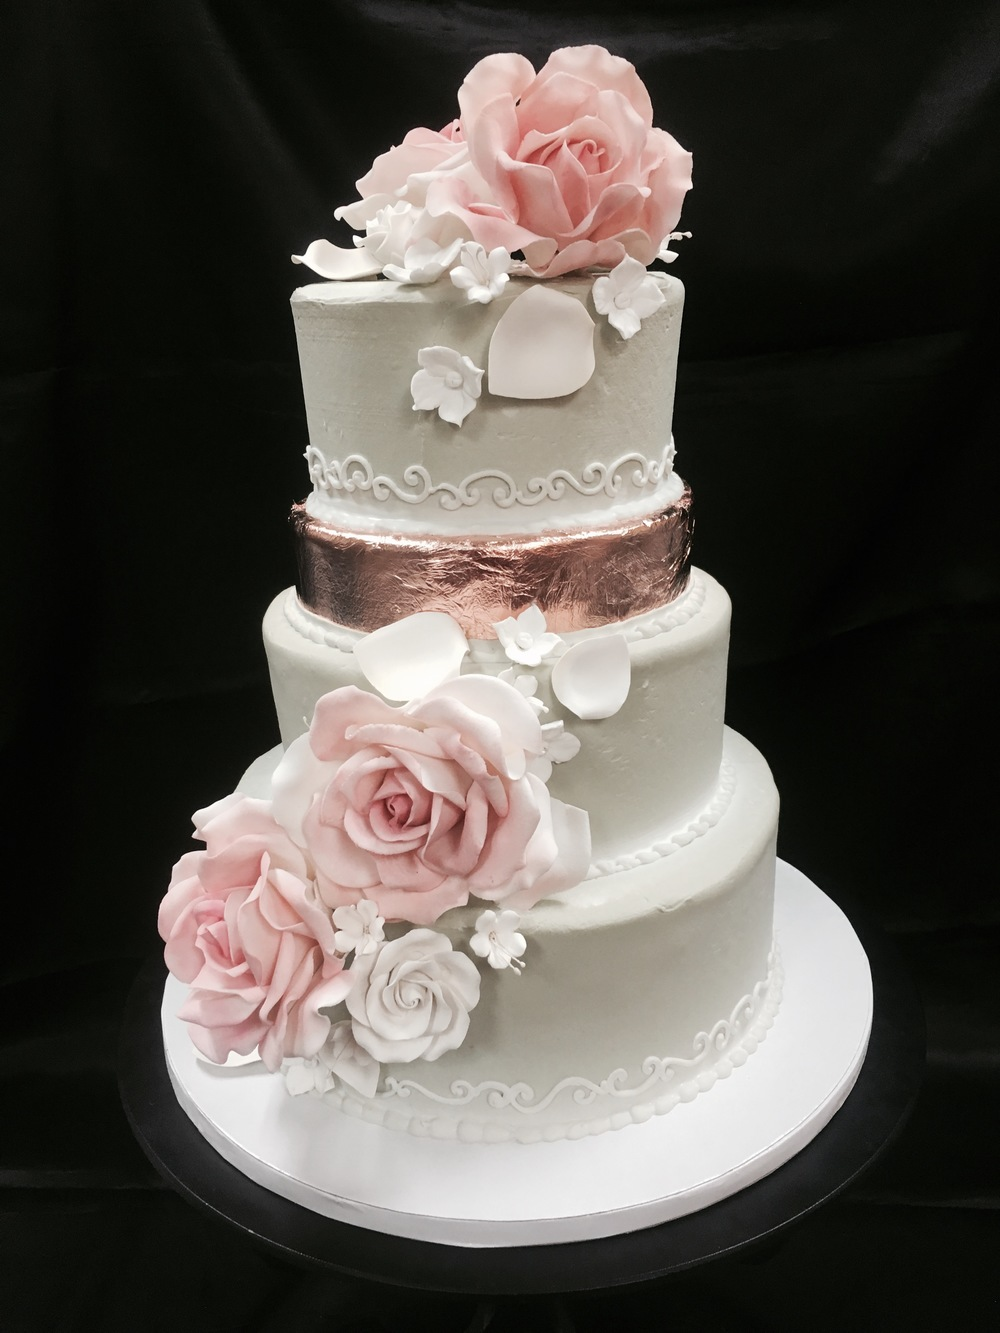 Antique Rose Wedding